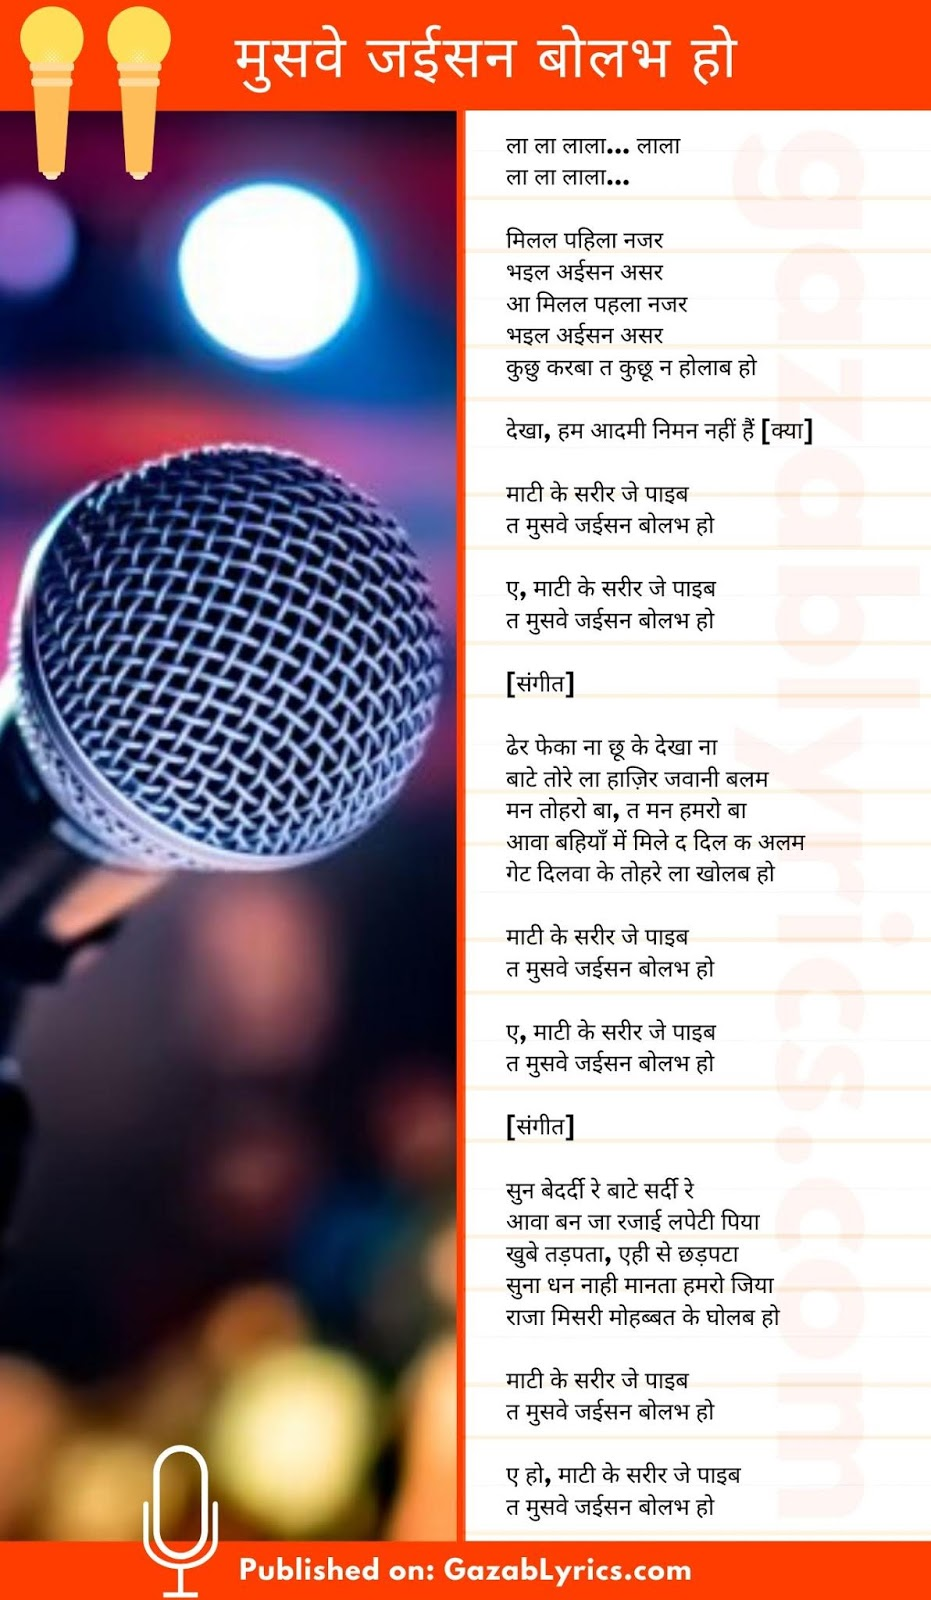 Muswe Jaisan Bolhab Ho song lyrics image